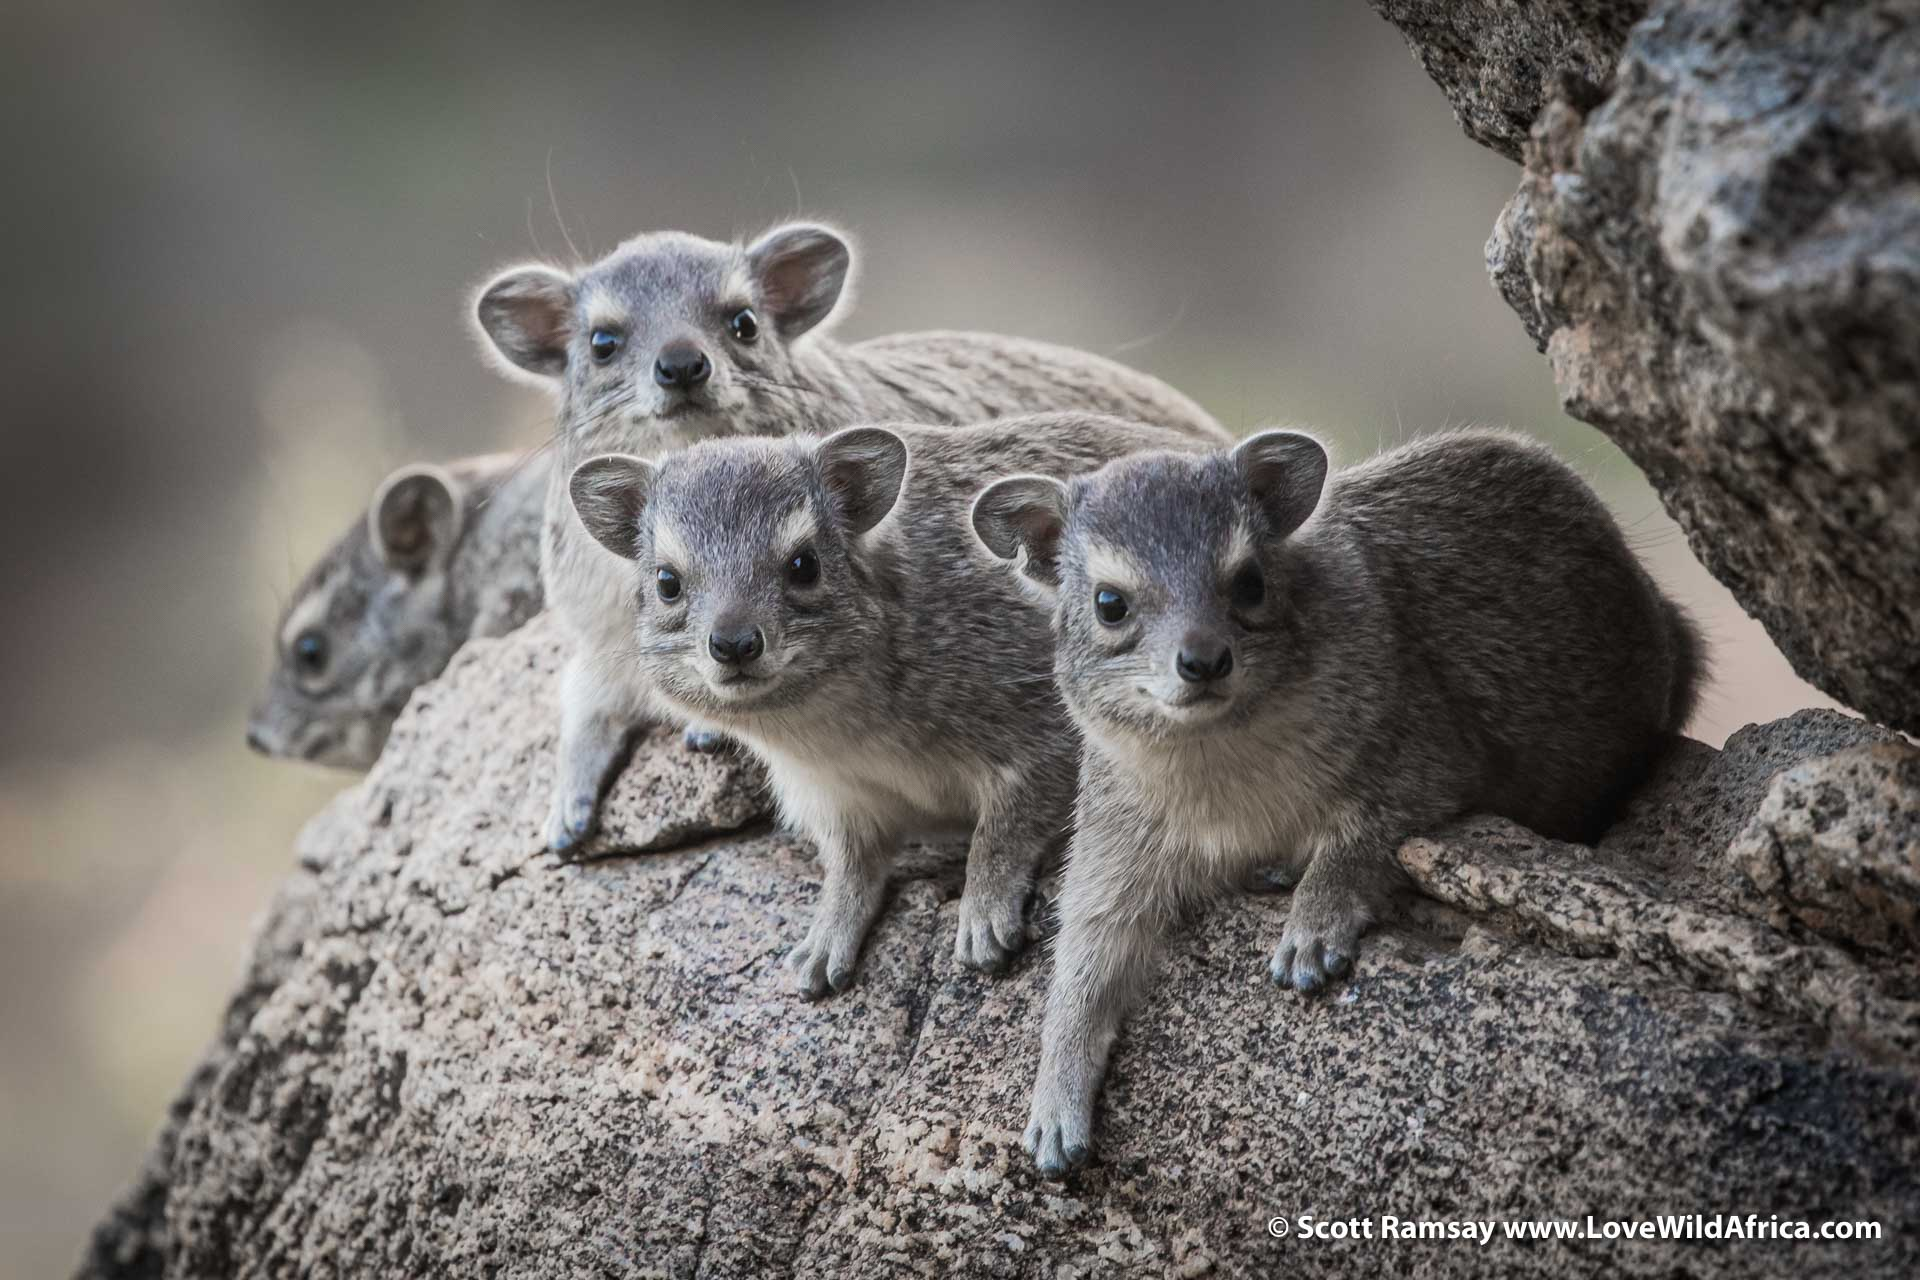 These are bush hyraxes…these particular fellas (or ladies) were checking me out near my room at Sasaab. This species (Heterohyrax brucei) seems cuter than the rock hyrax species (Procavia) which you also find in Kenya and Southern Africa.